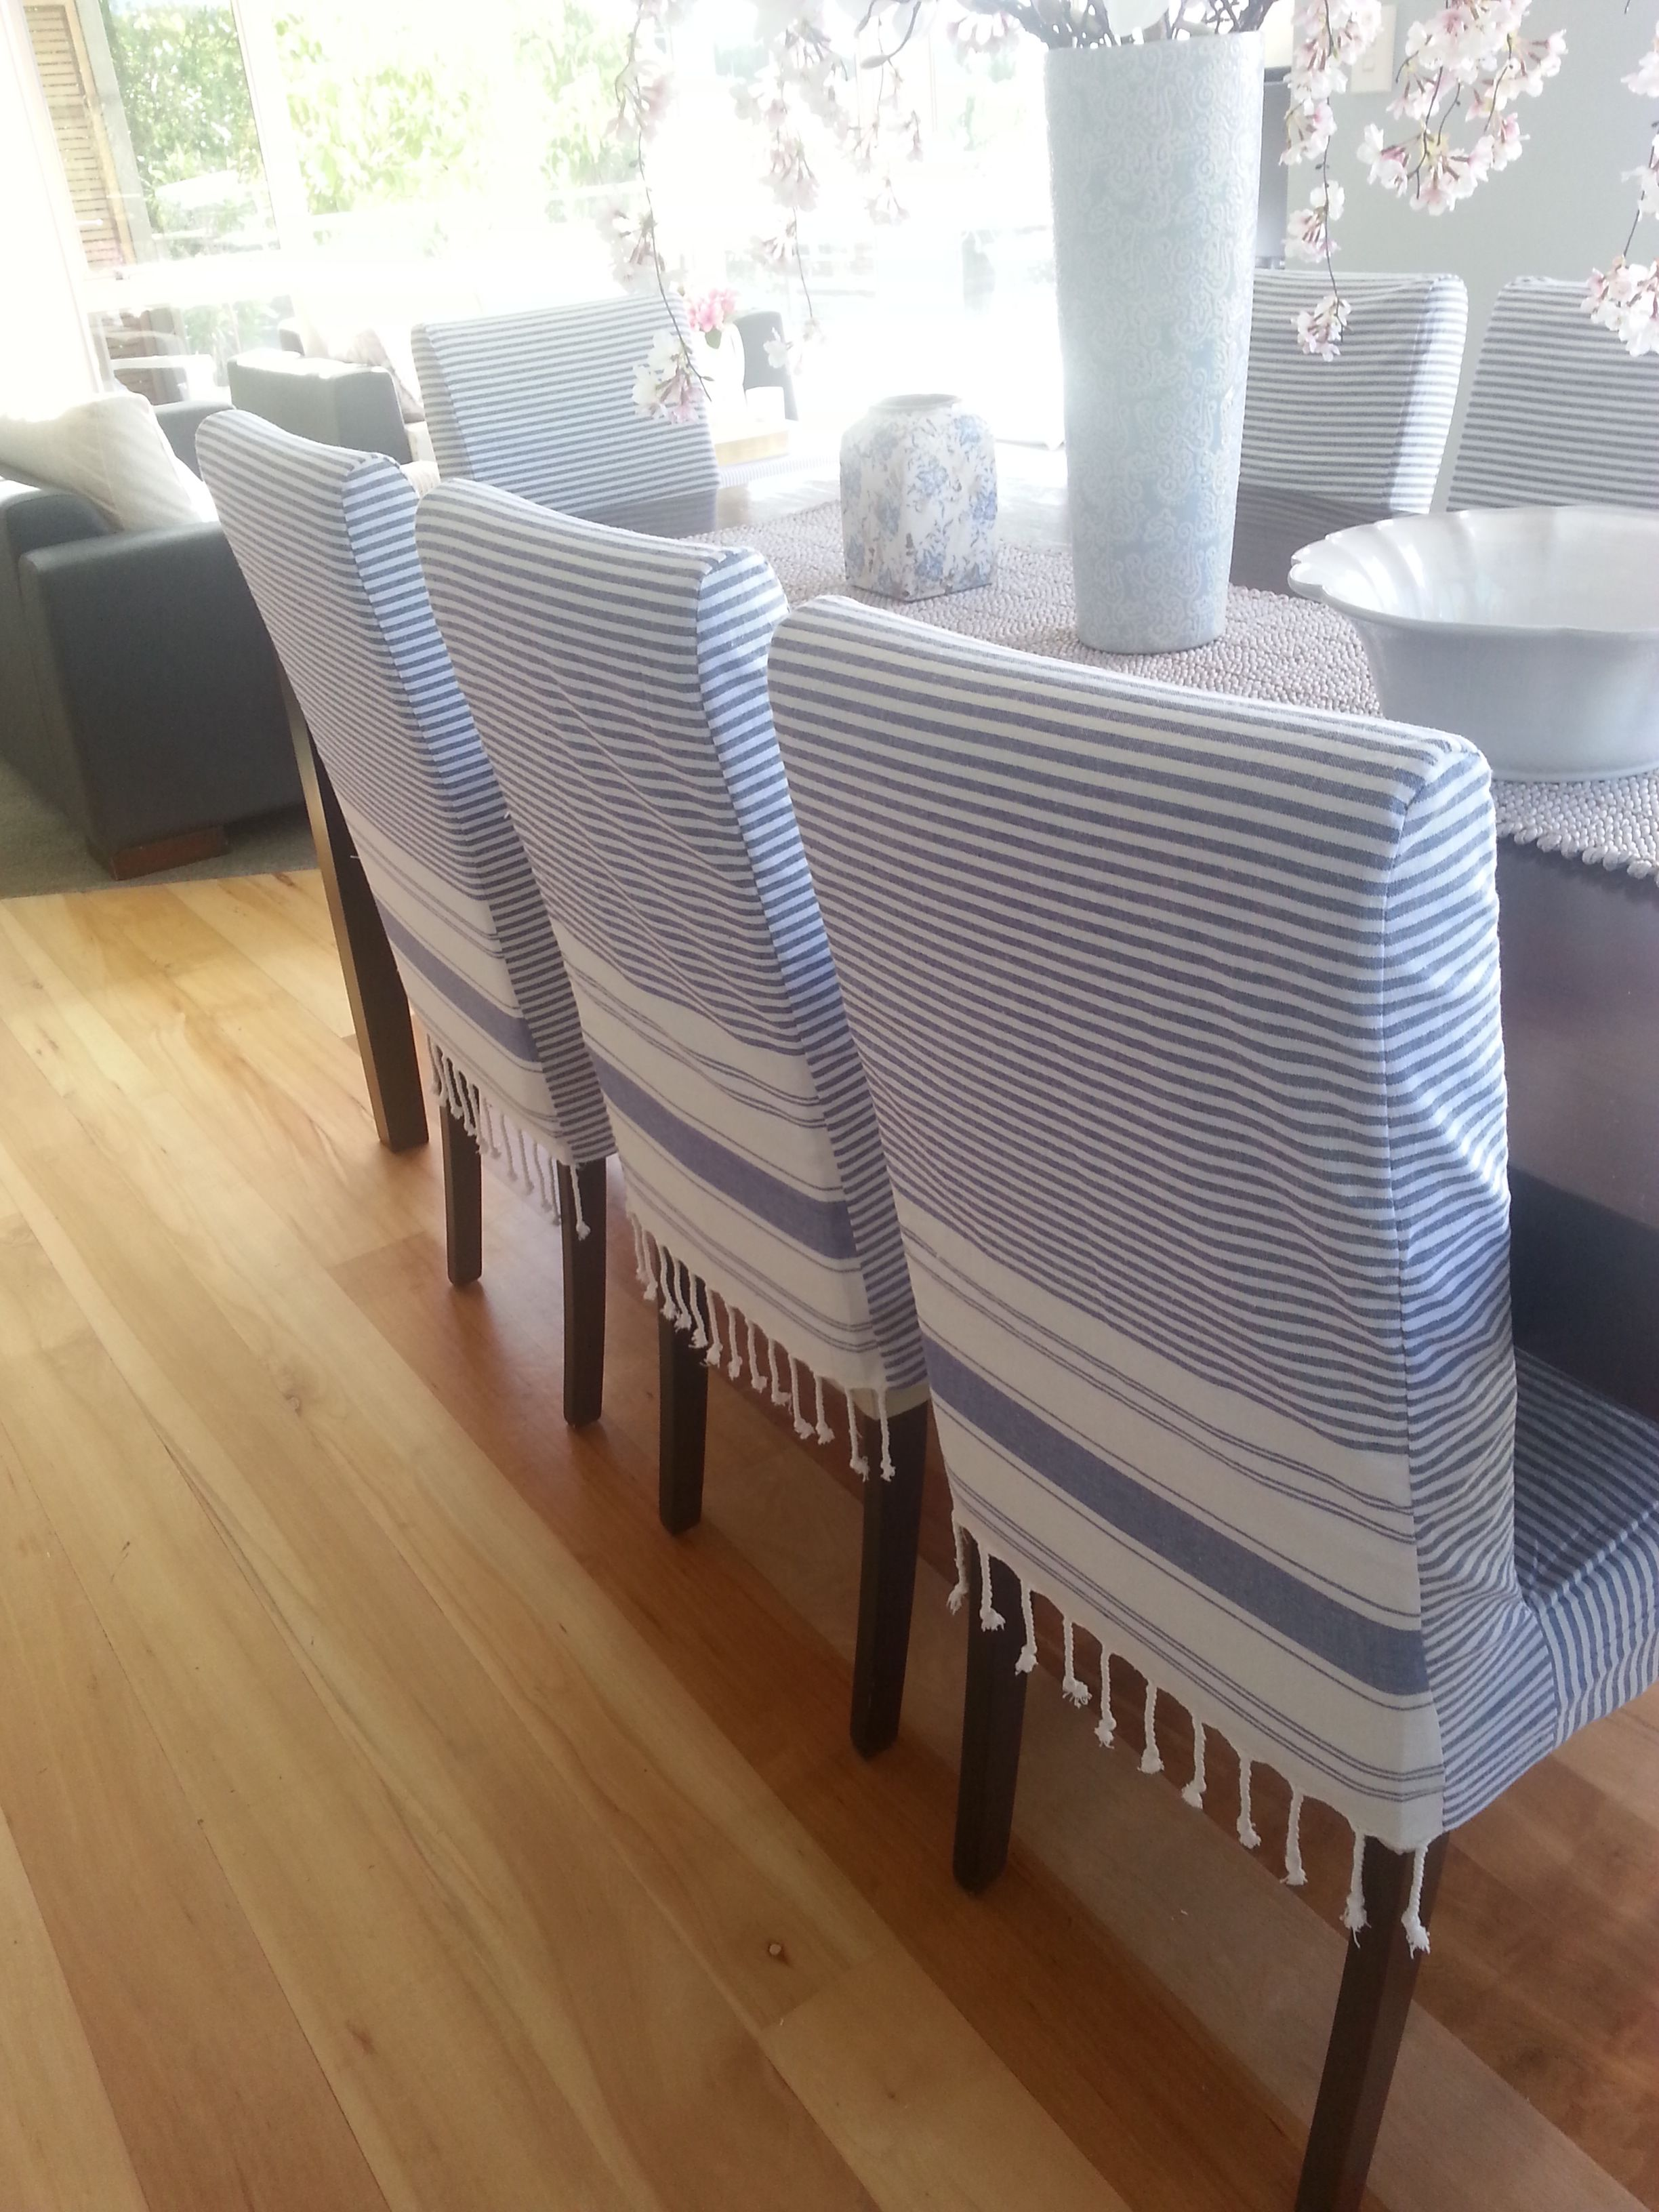 Striped Dining Chair Hardwood Chairs Covers Room Blue And White May Be Made From Turkish Peshtemal Towel Pestemal Dii Fanta Hammam